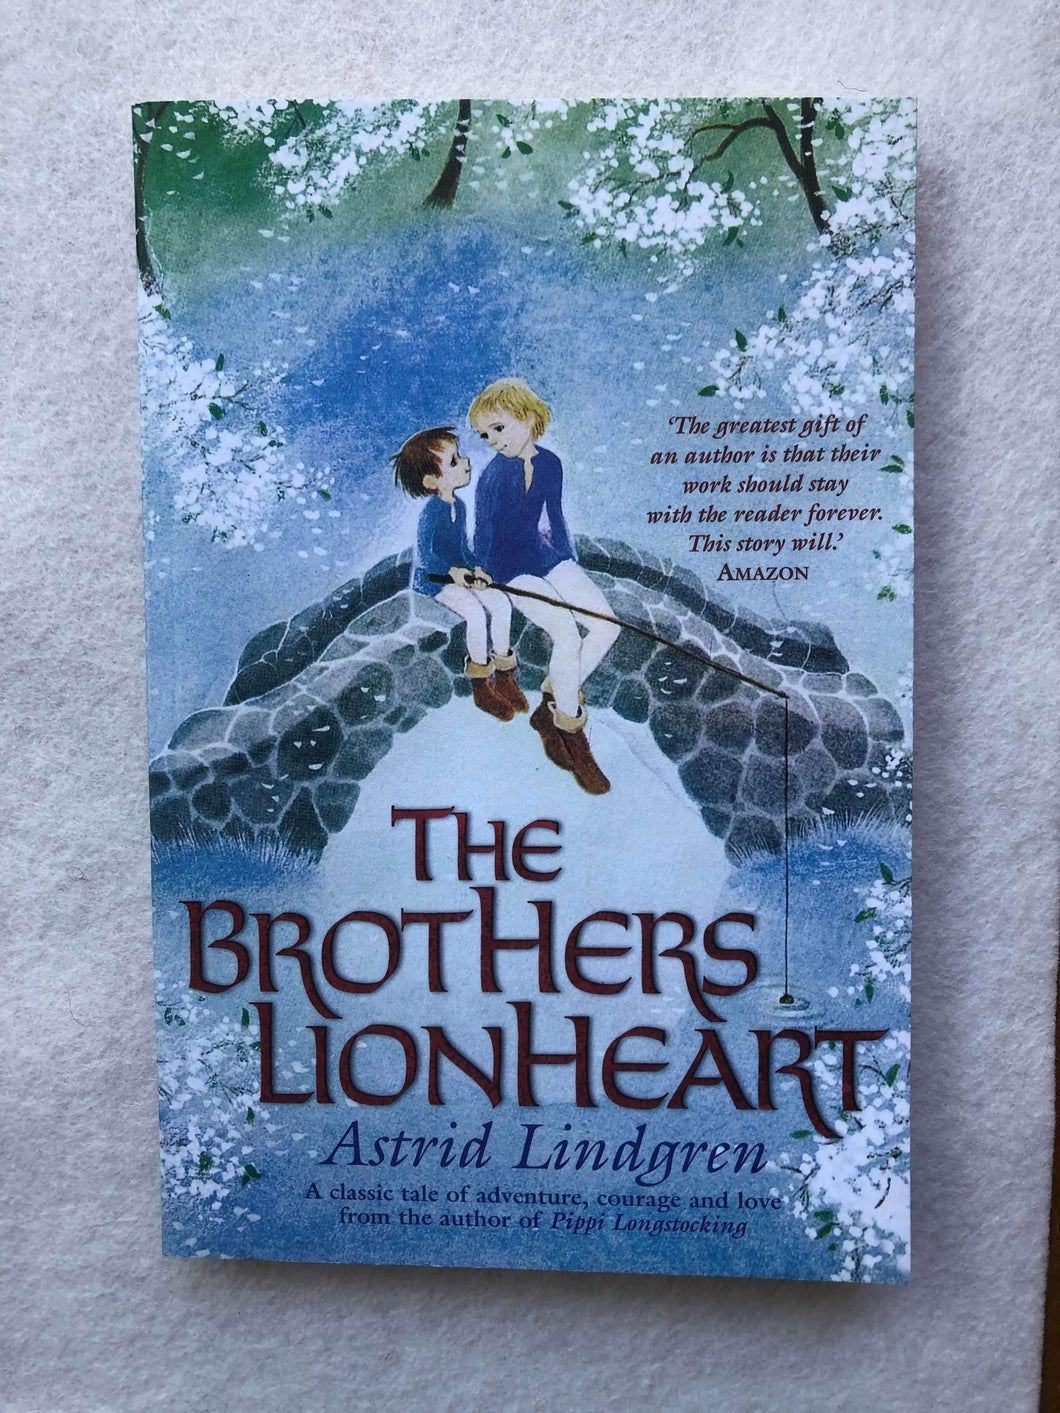 Astrid Lindgren - The Brothers Lionheart